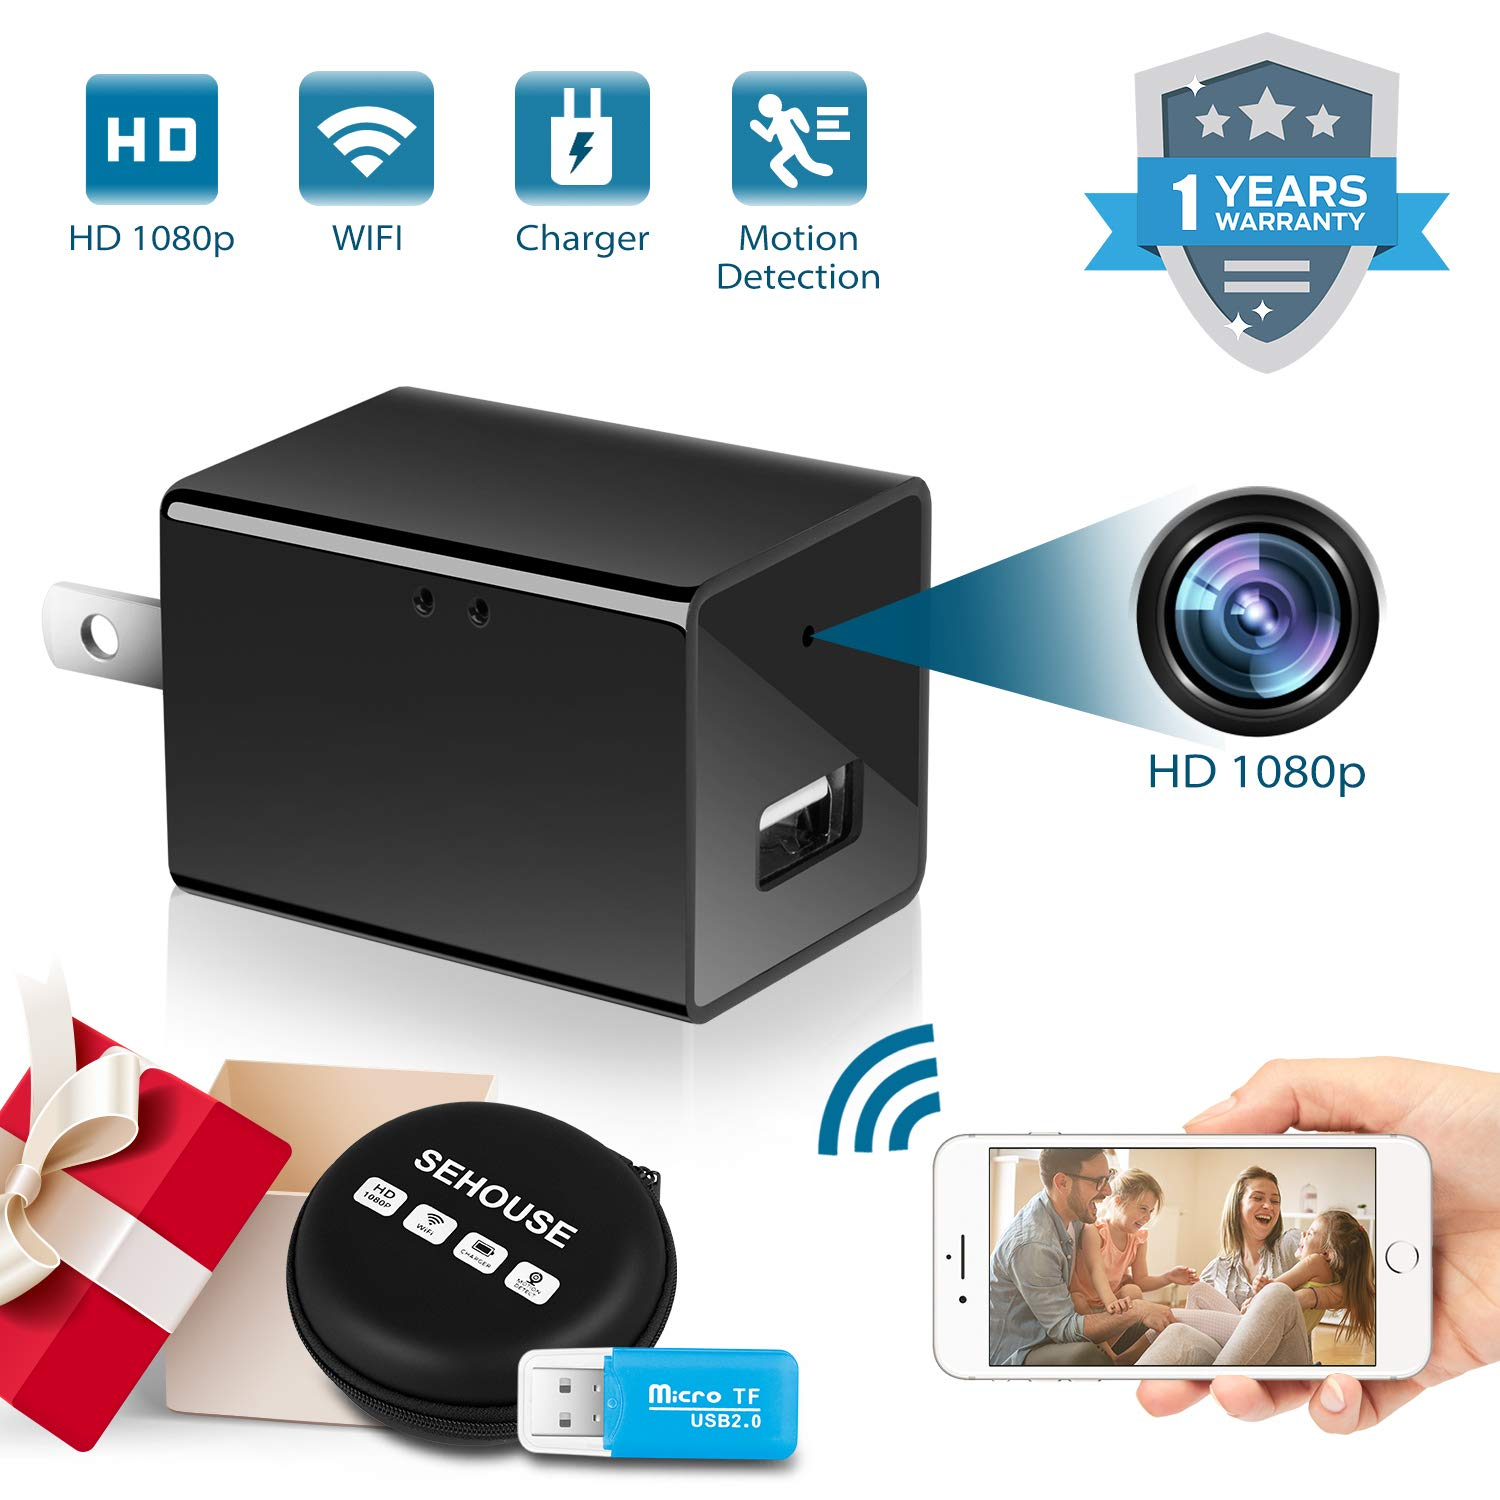 Hidden Camera 1080P HD Motion Detection WiFi Wireless Mini Cam for Home Office Hotel Security as Nanny Cam Video Recorder for iPhone/Android Phone/iPad/PC